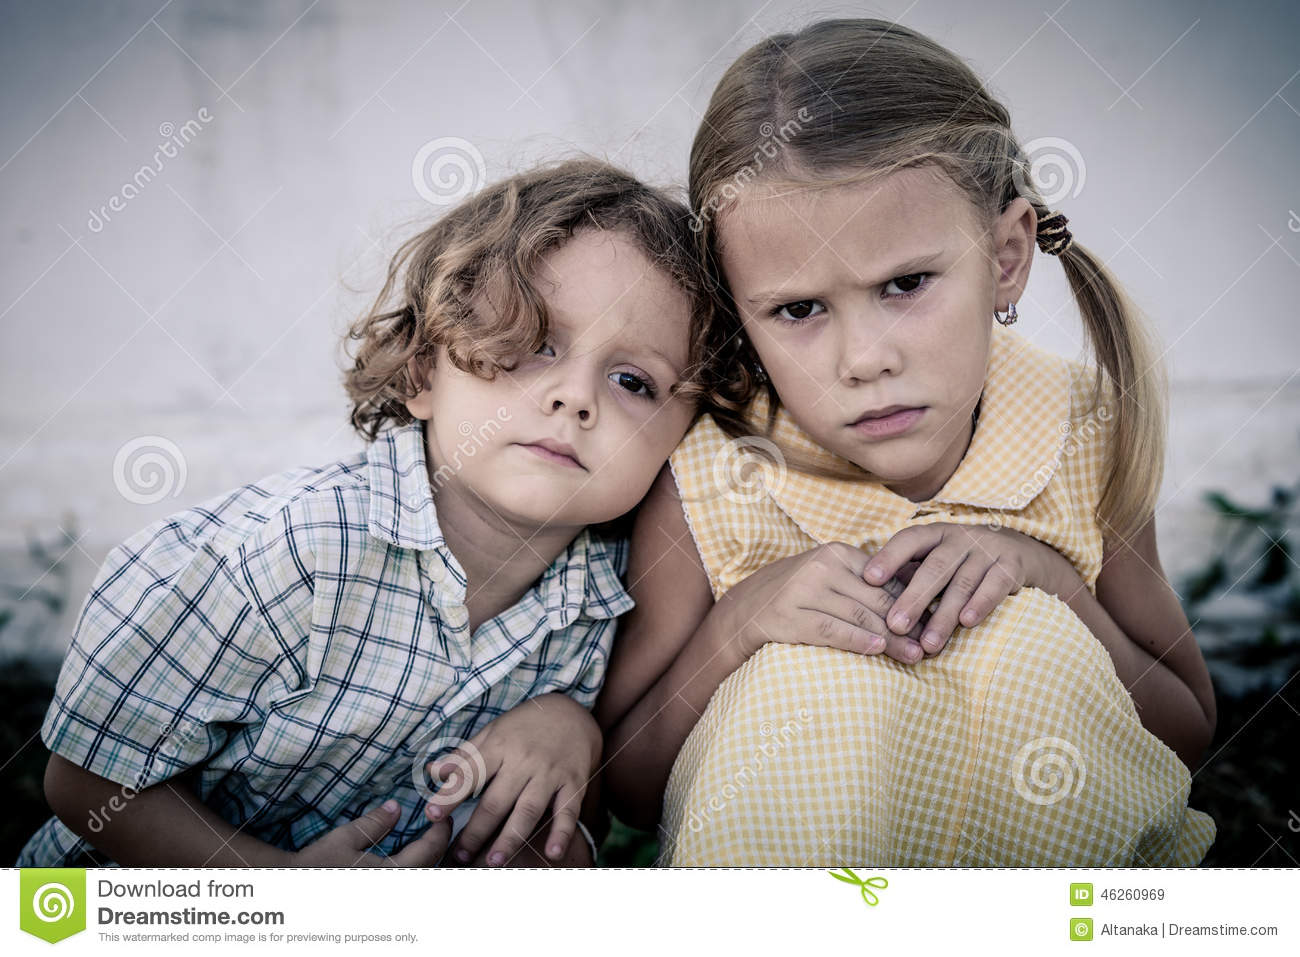 Portrait Of Sad Little Girl And Boy Stock Image - Image Of Lost, Pain 46260969-5713